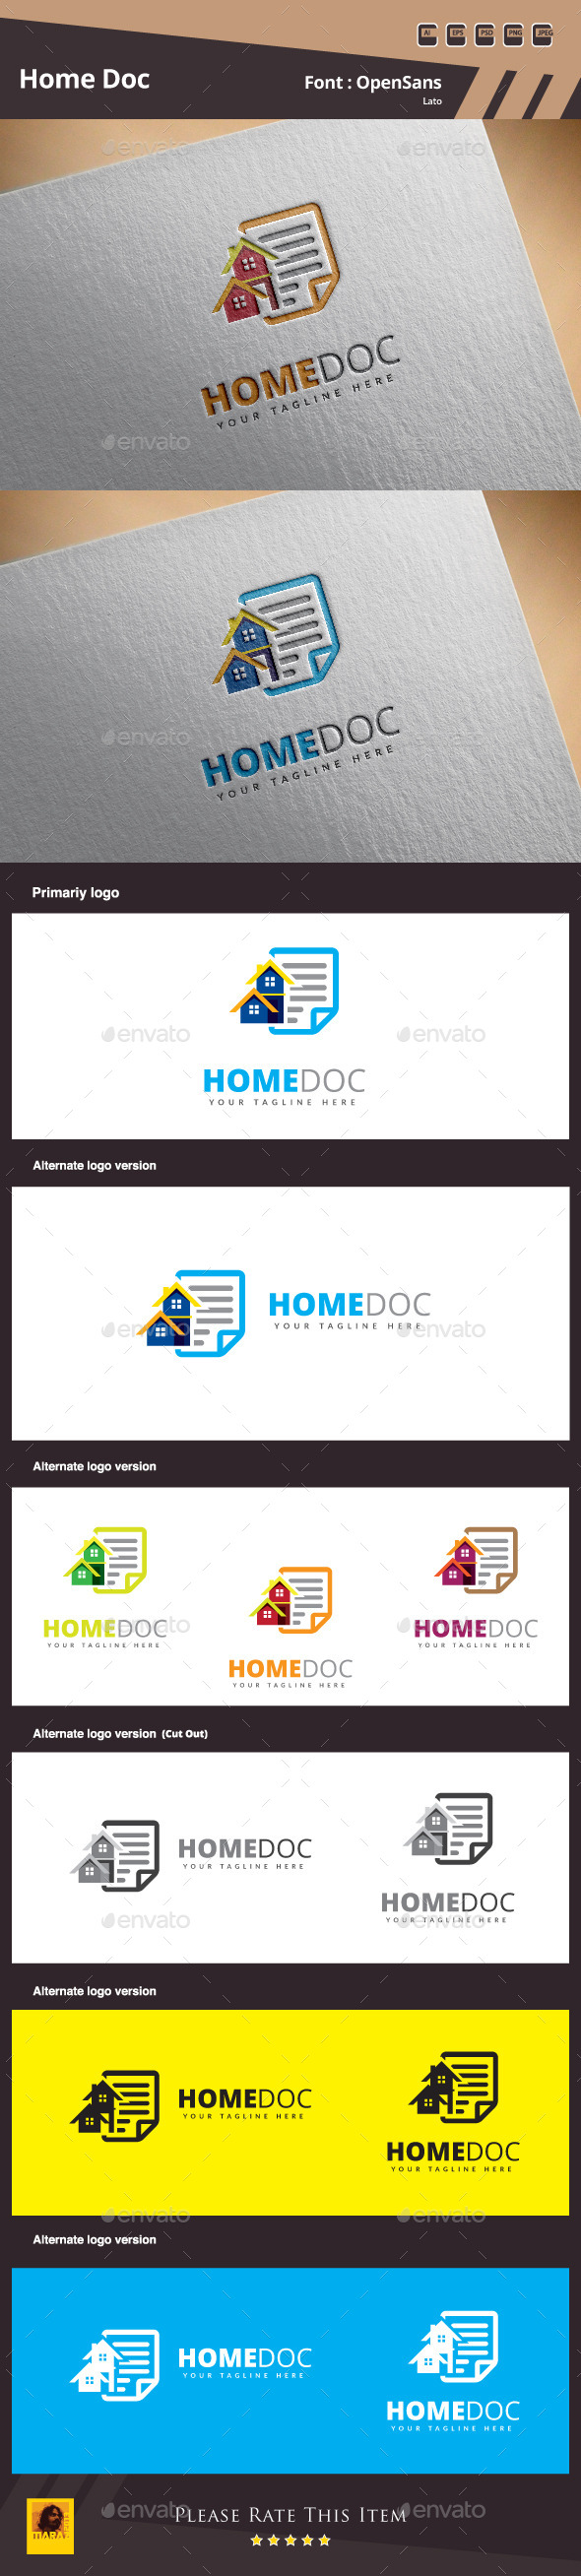 Home Doc Logo Template - Buildings Logo Templates